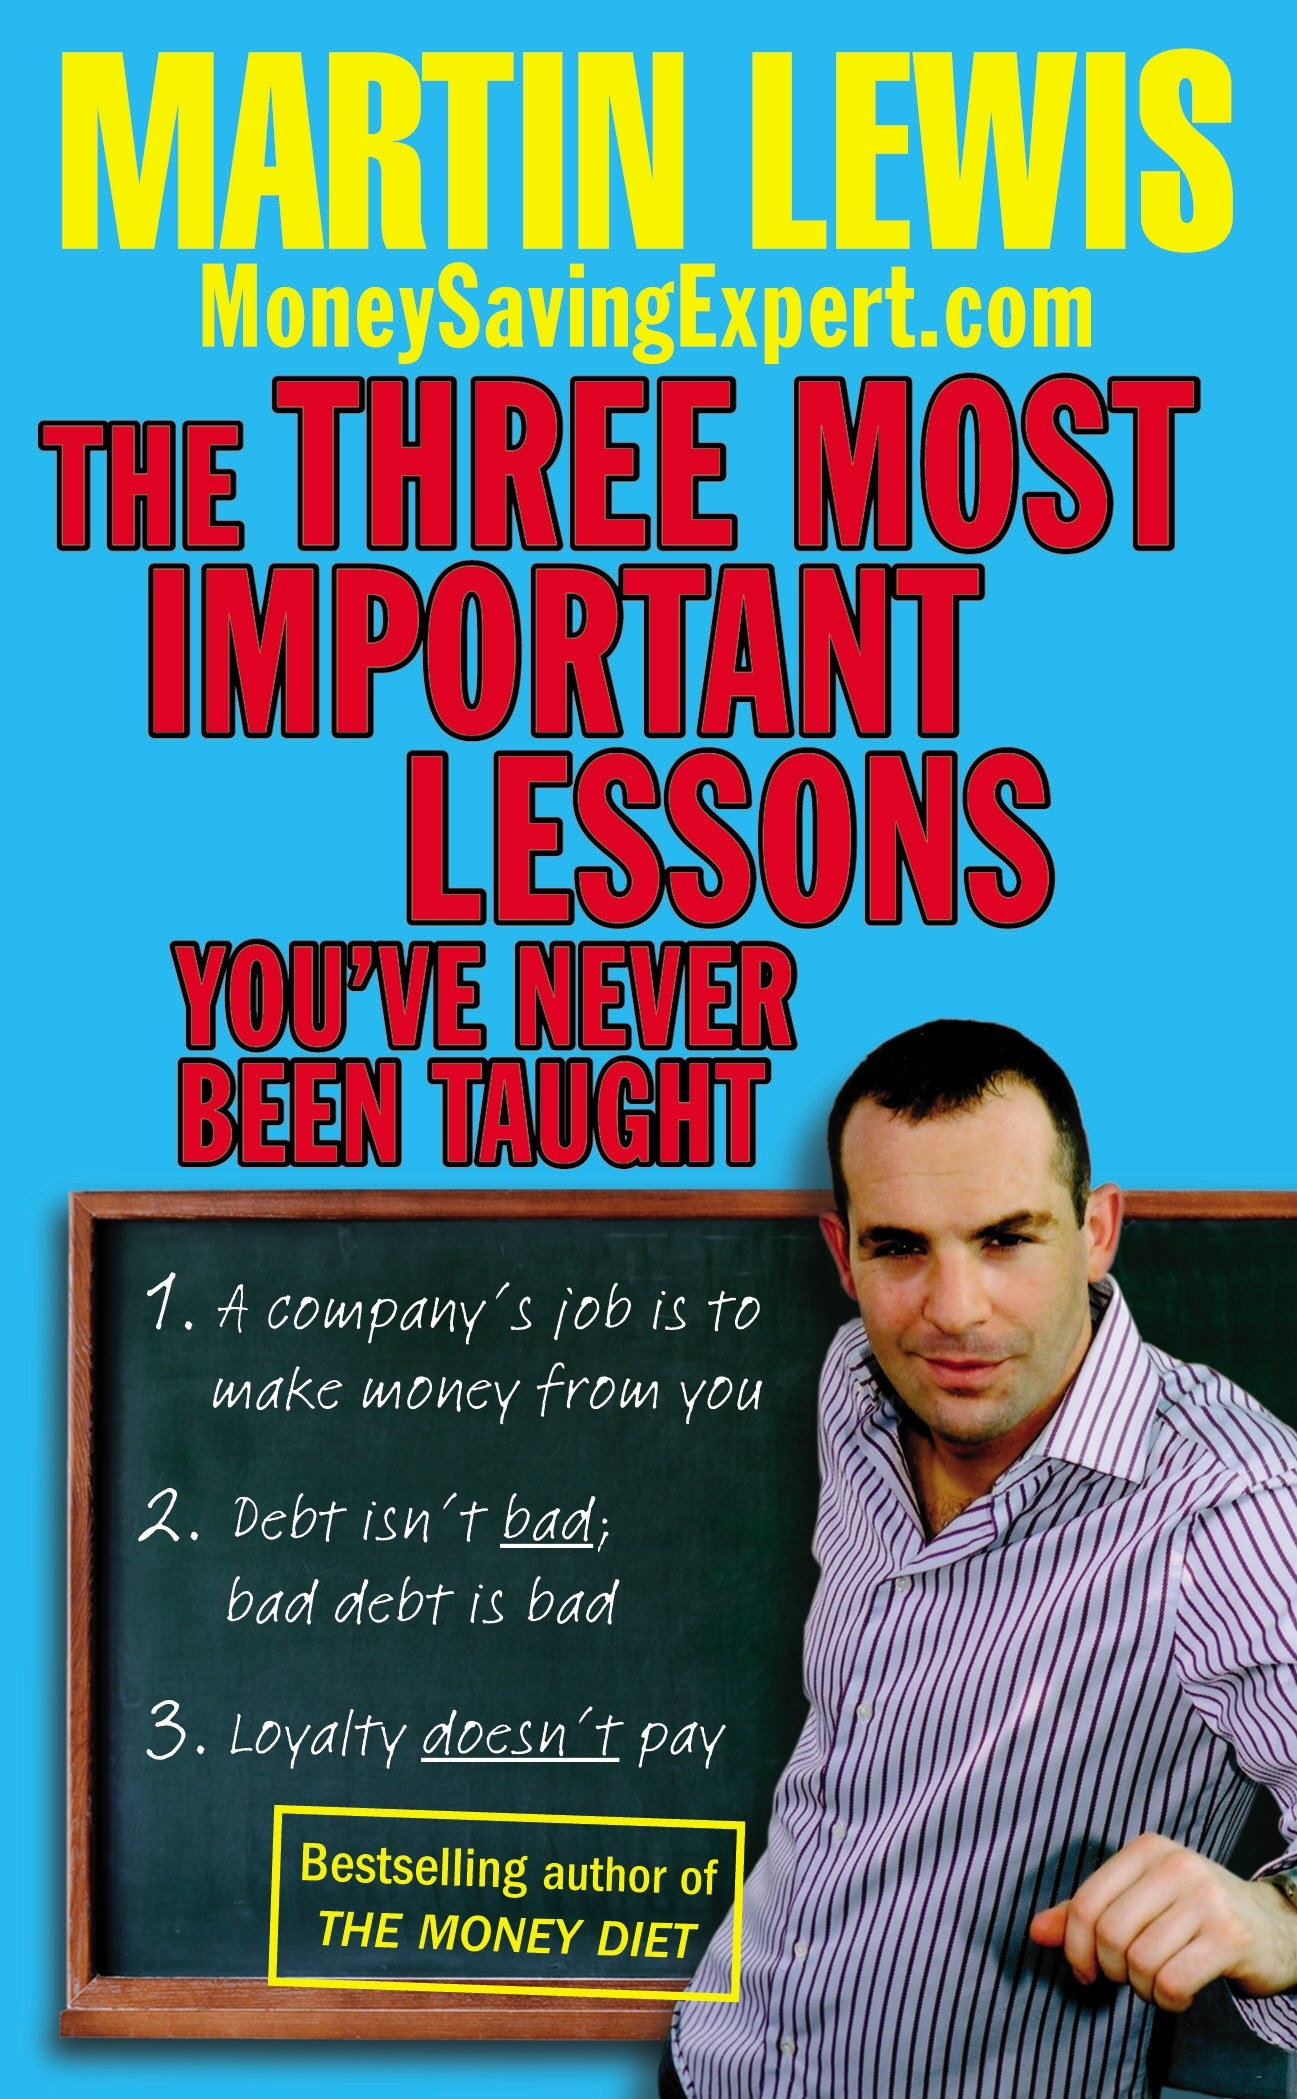 The Three Most Important Lessons You've Never Been Taught